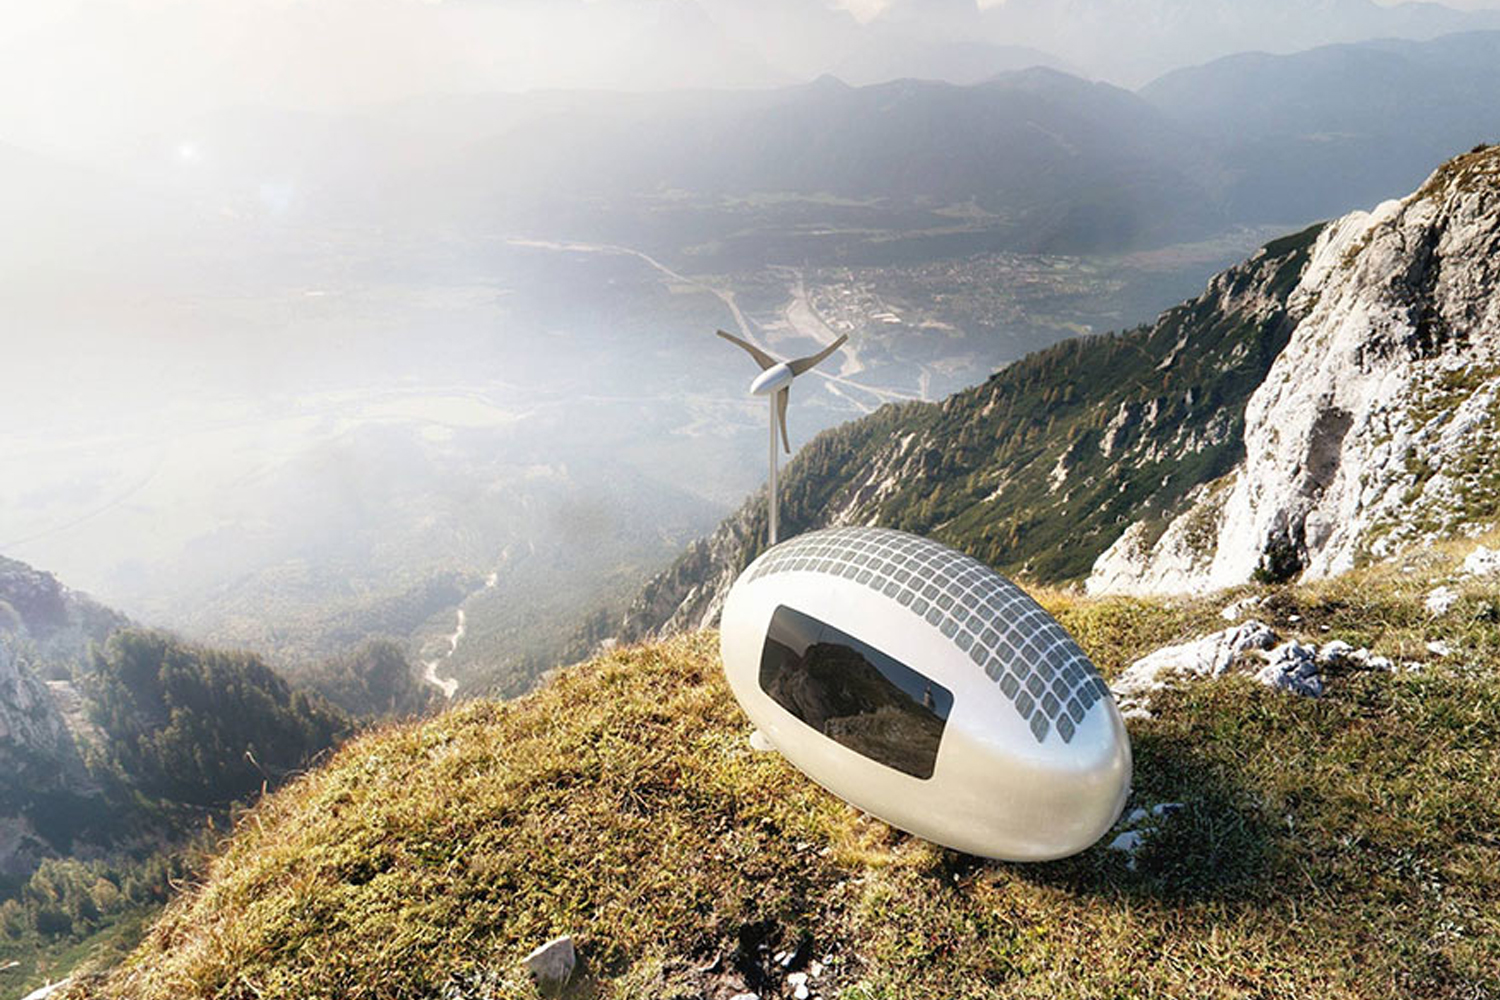 We're Going To Get An Ecocapsule And Live Off The Grid. Bye!